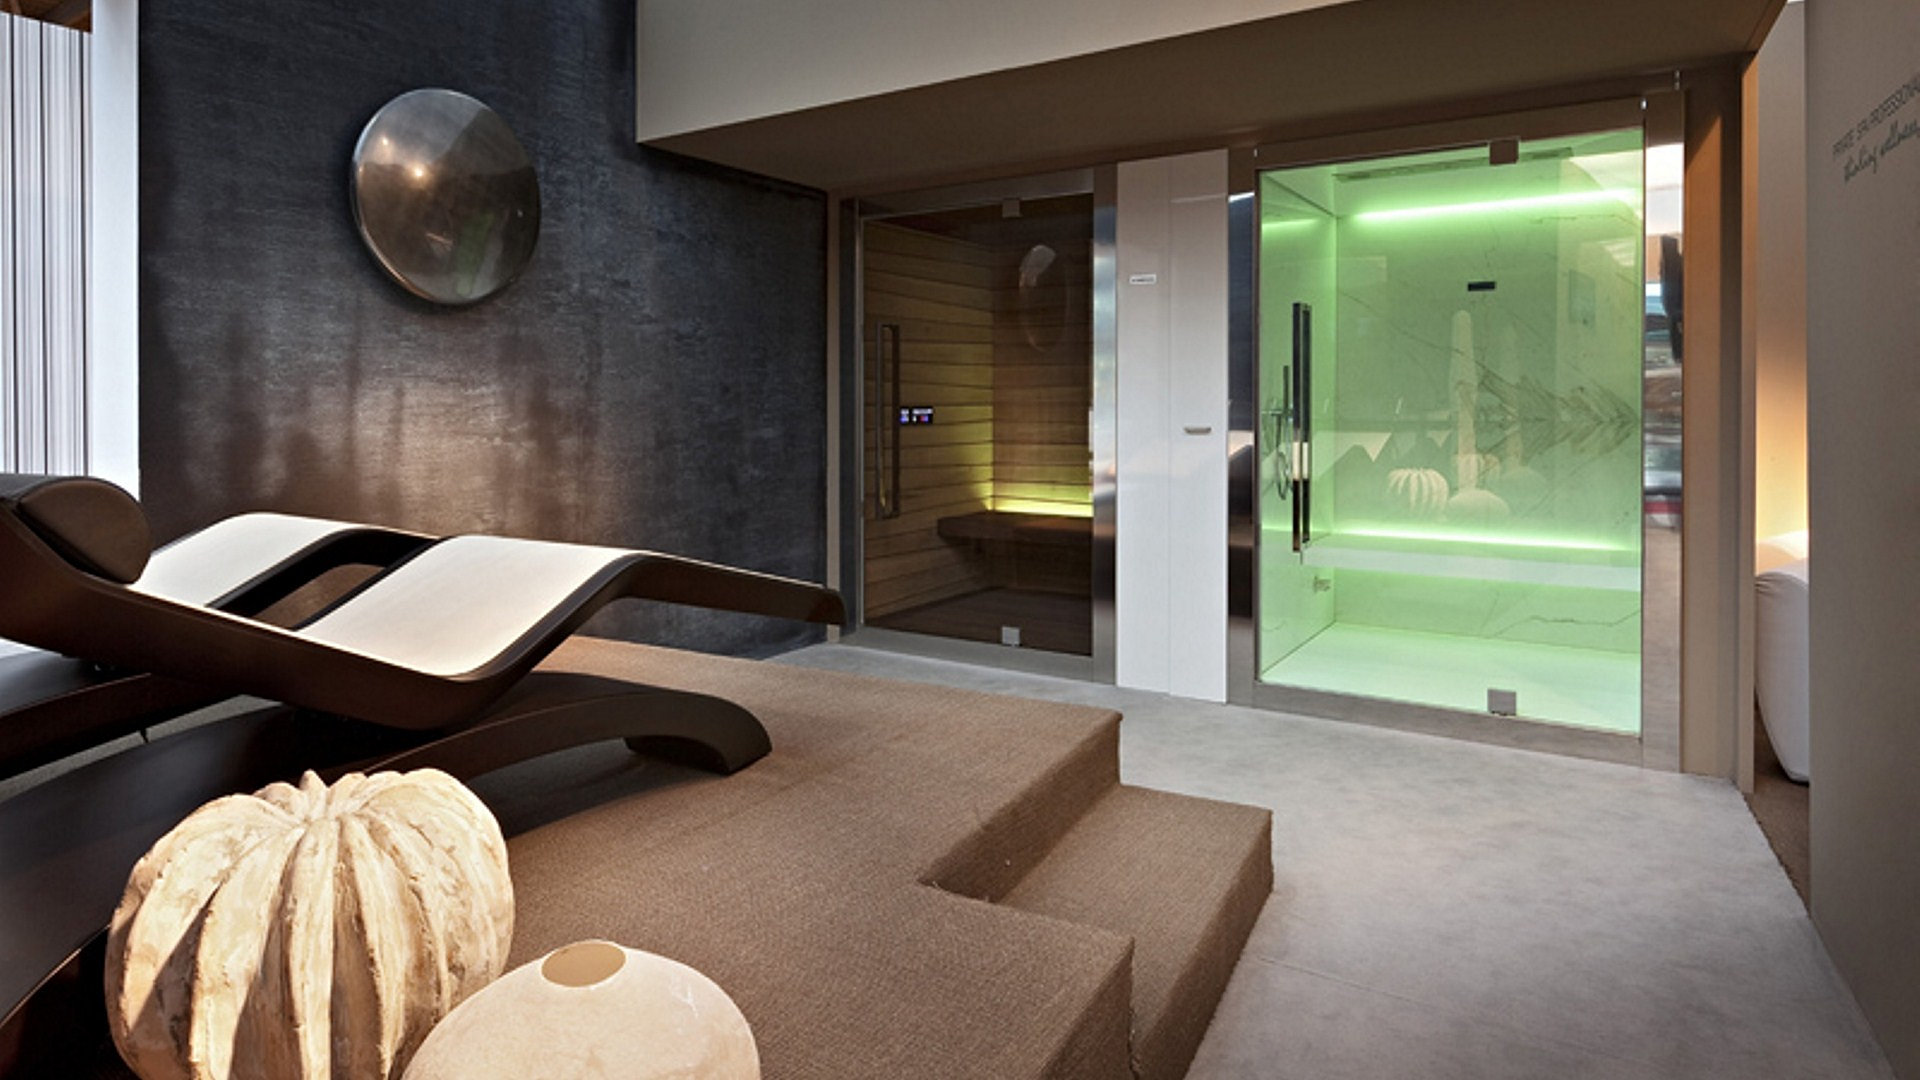 Fabio alemanno design and manufacture exclusive spa for Chaise longue salon